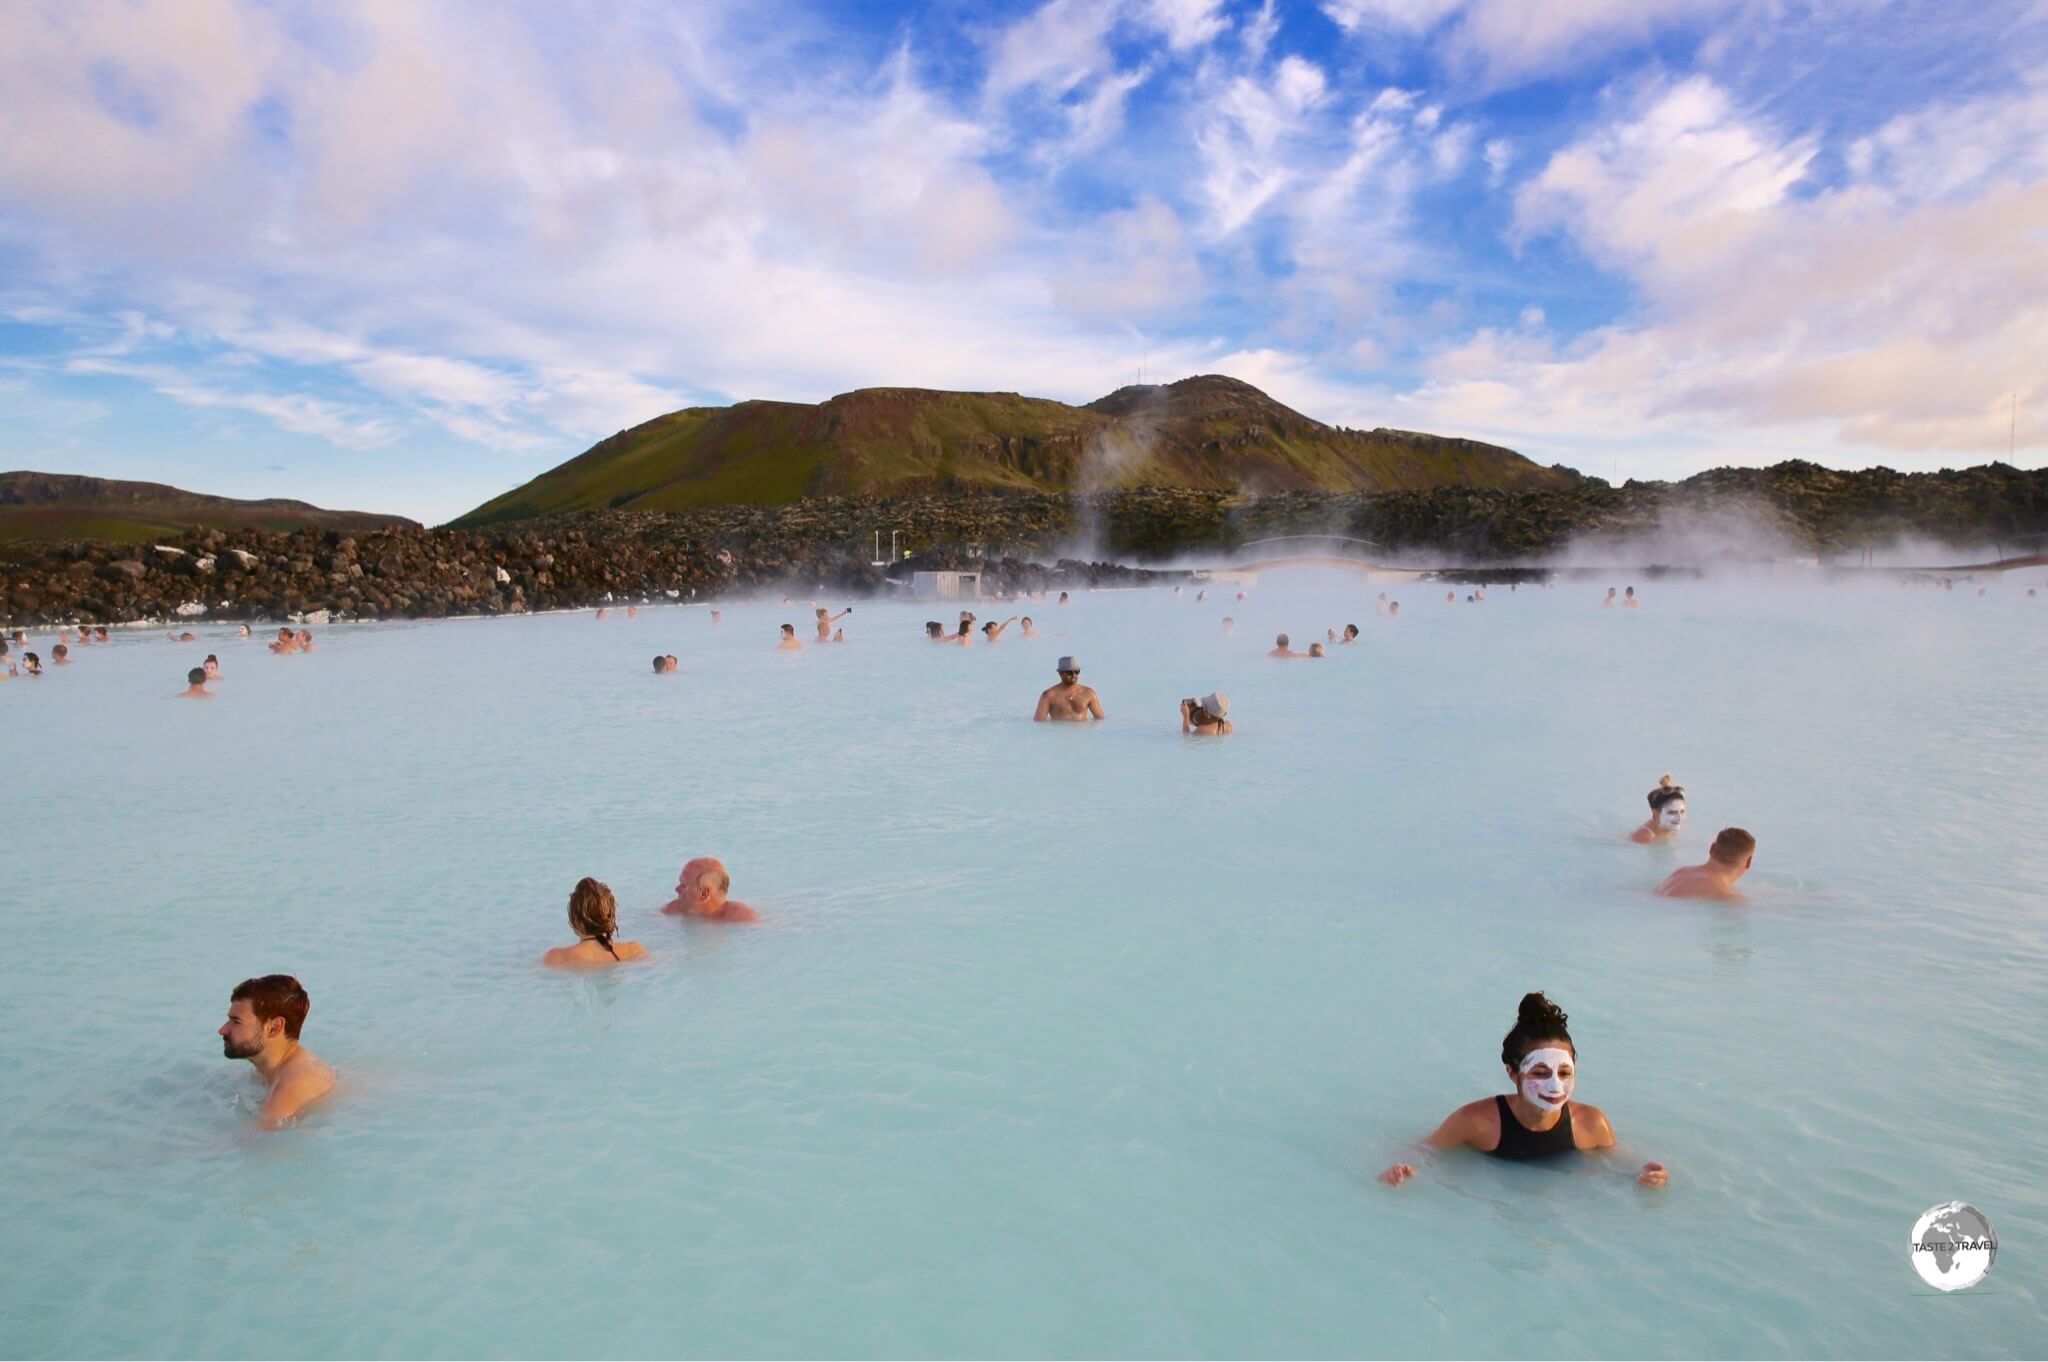 The thermal water in the popular Blue Lagoon is run-off from the adjacent thermal power station.